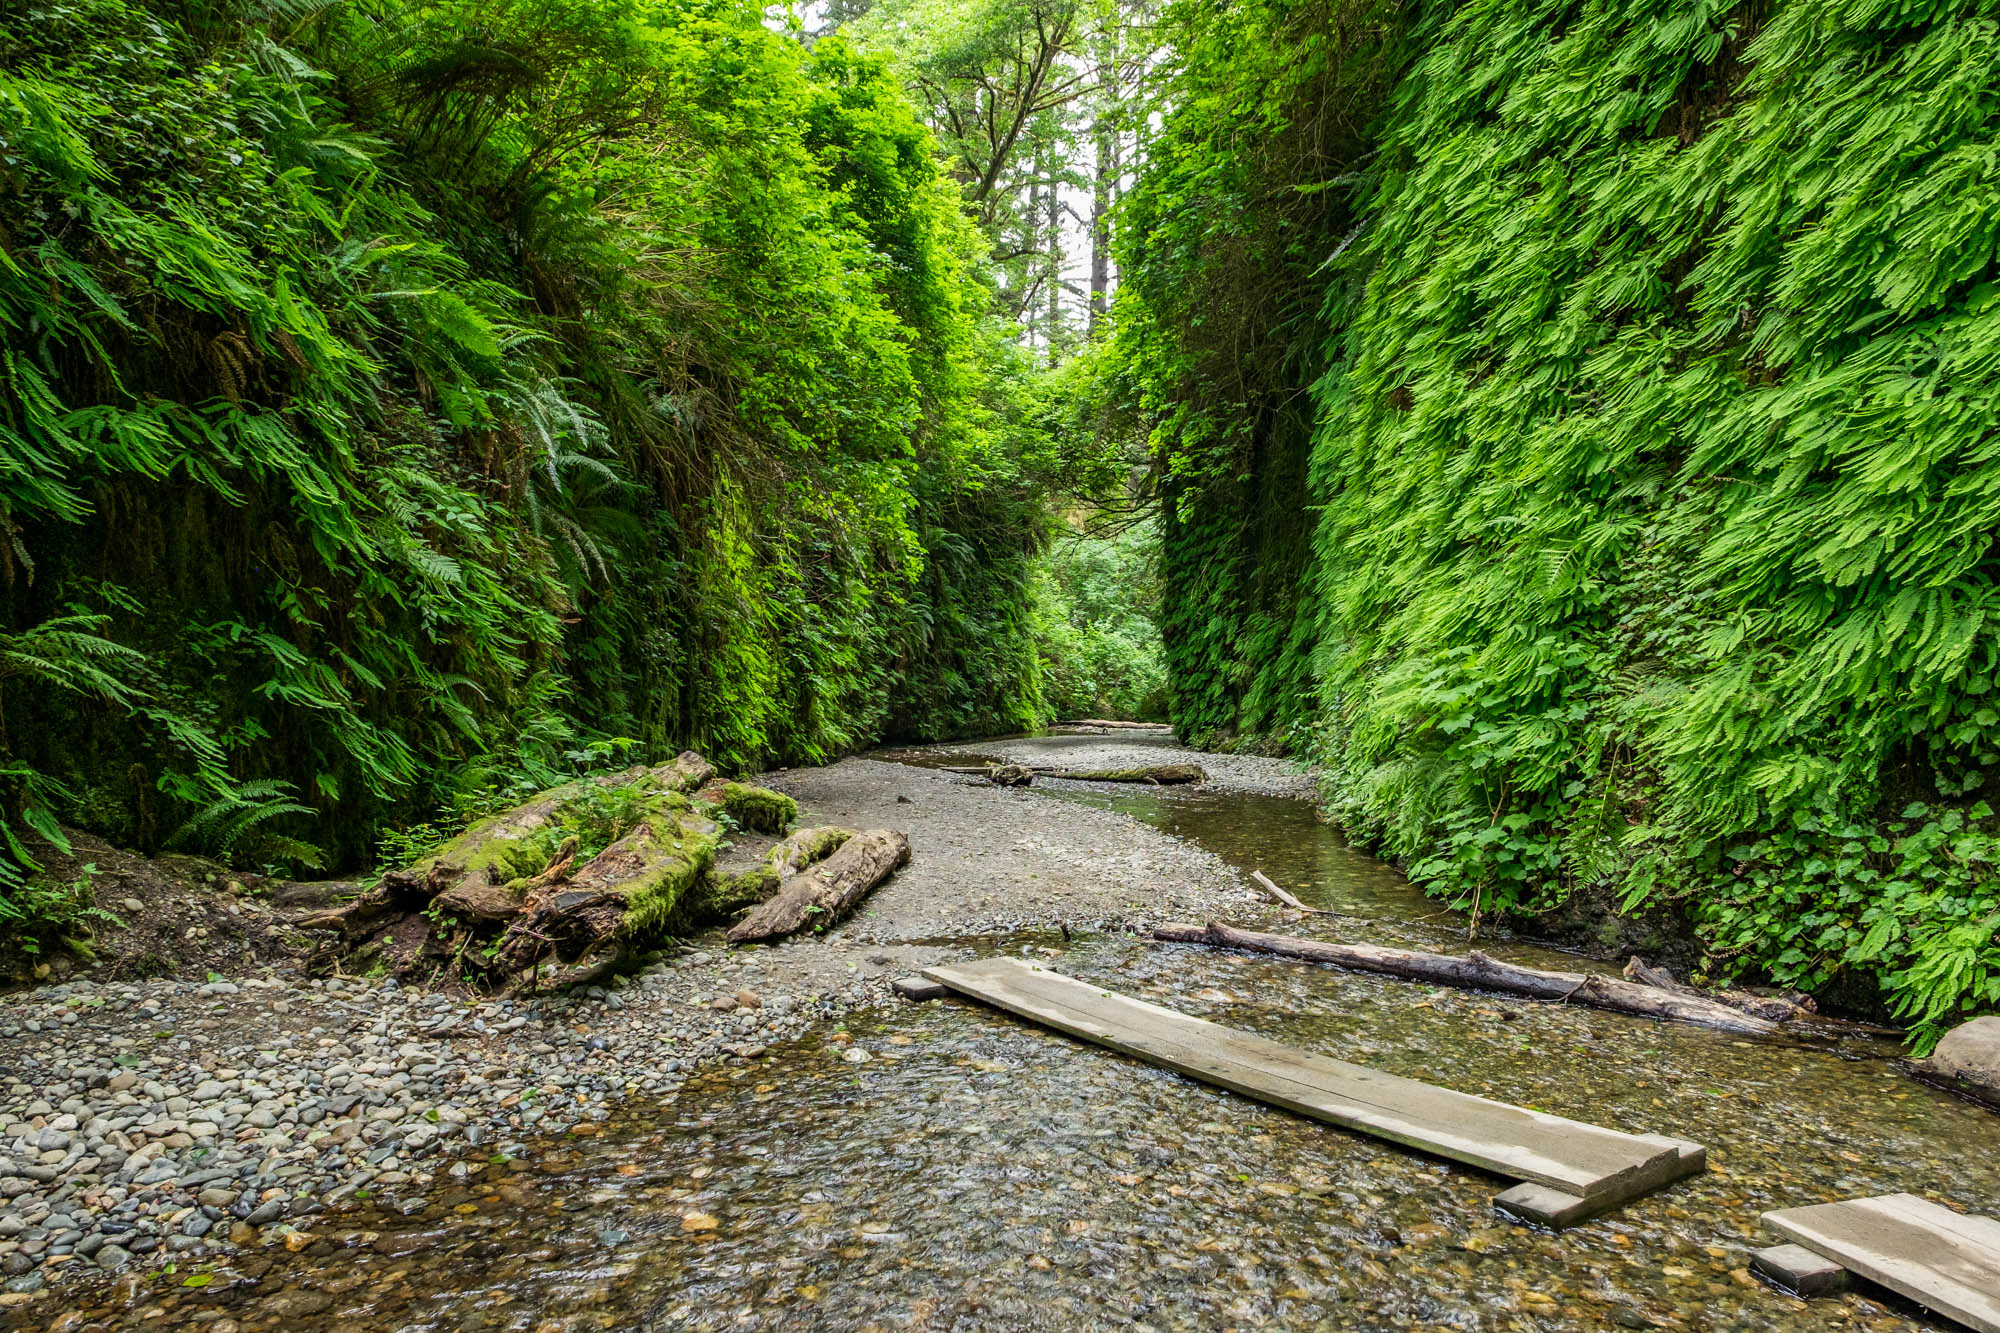 Fern Canyon is one of the most visited, and incredible, places within the park. Imagine a canyon covered in ferns that you can walk through....amazing!